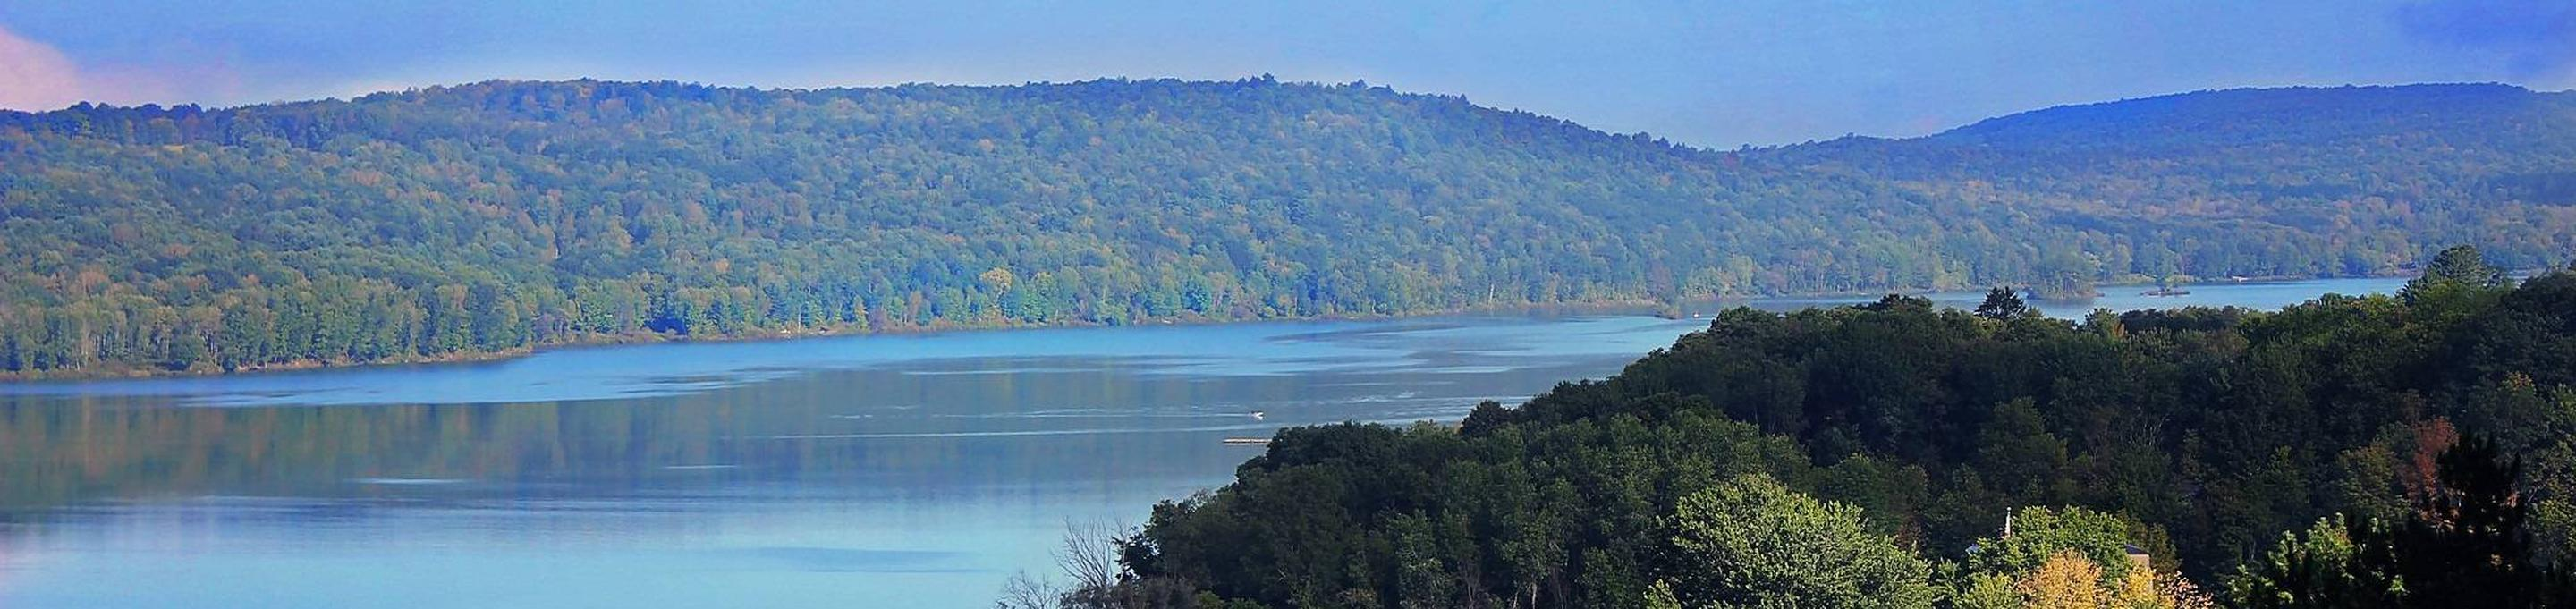 Whitney Point Lake OverlookThe view from Whitney Point Lake Overlook